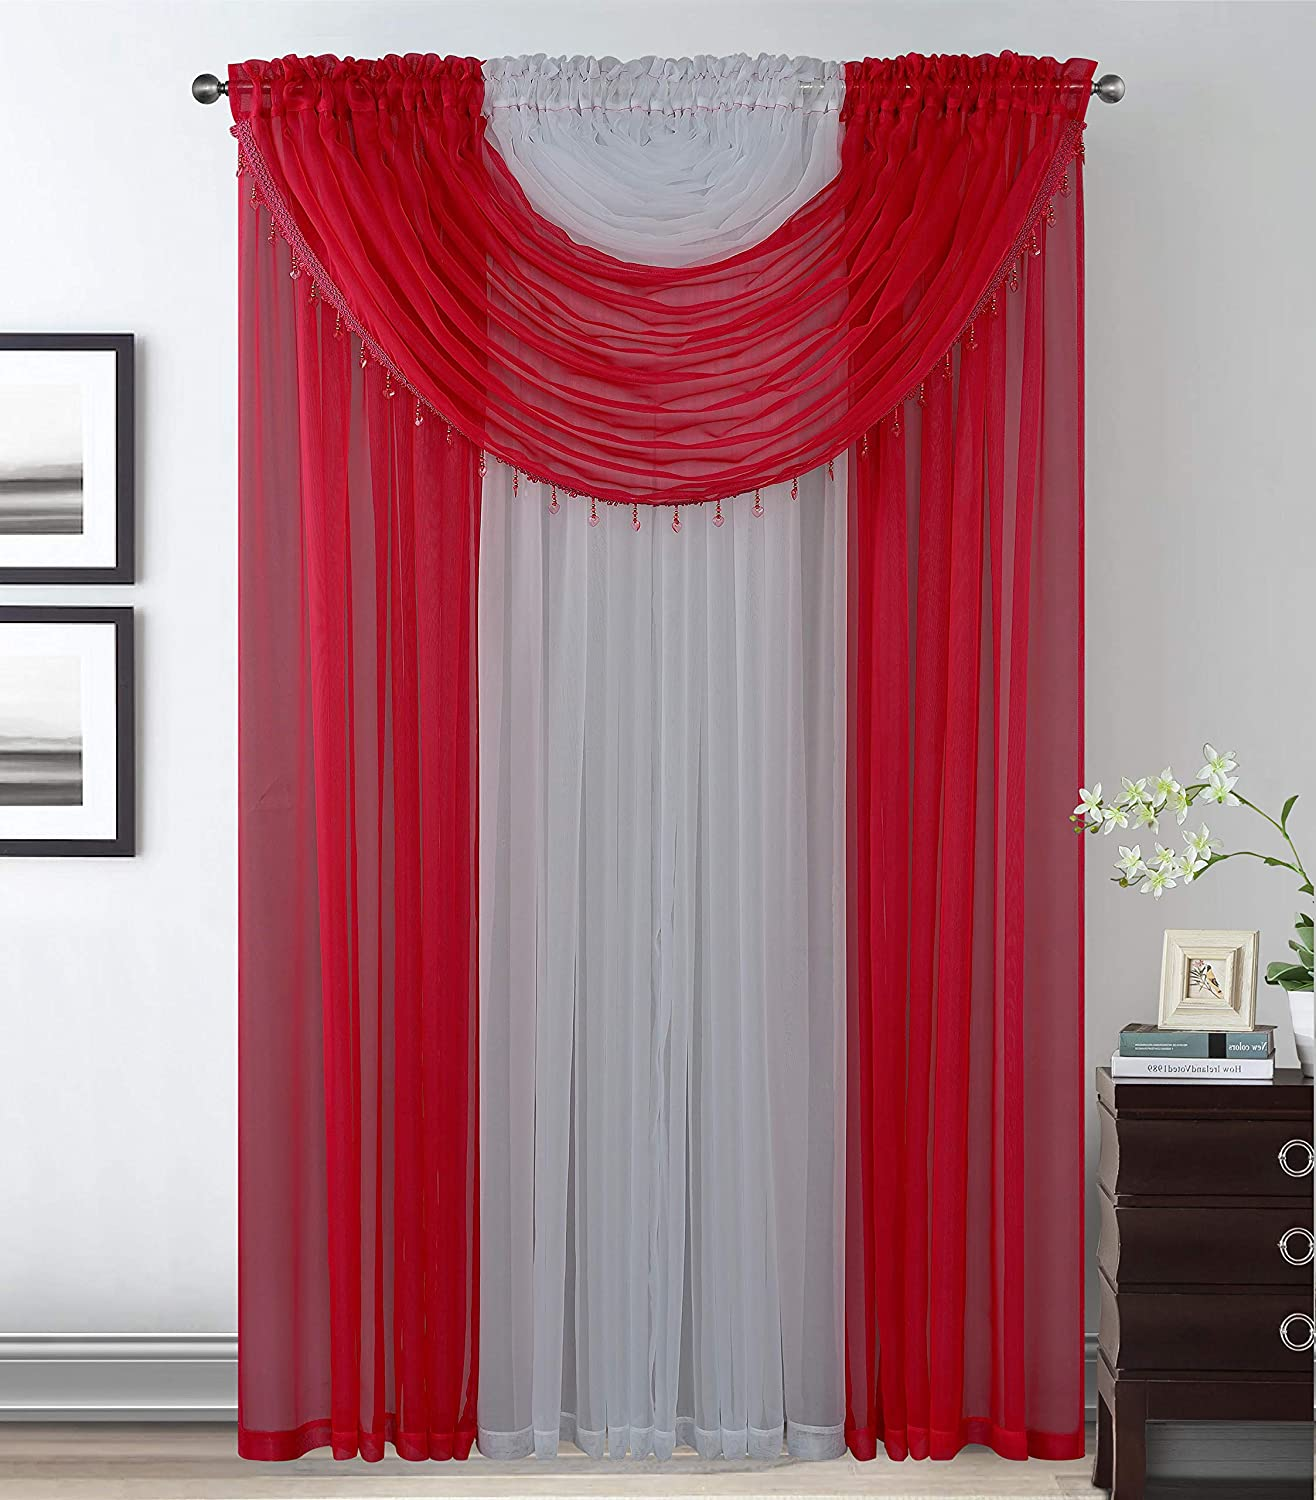 Elegant Home Complete Multicolor Window Sheer Curtain All-in-One Set with 4 Panels and 2 Valances with with Crystal Beads for Living Room, Dining Room, Or Any Other Windows- Laura (Red / White)